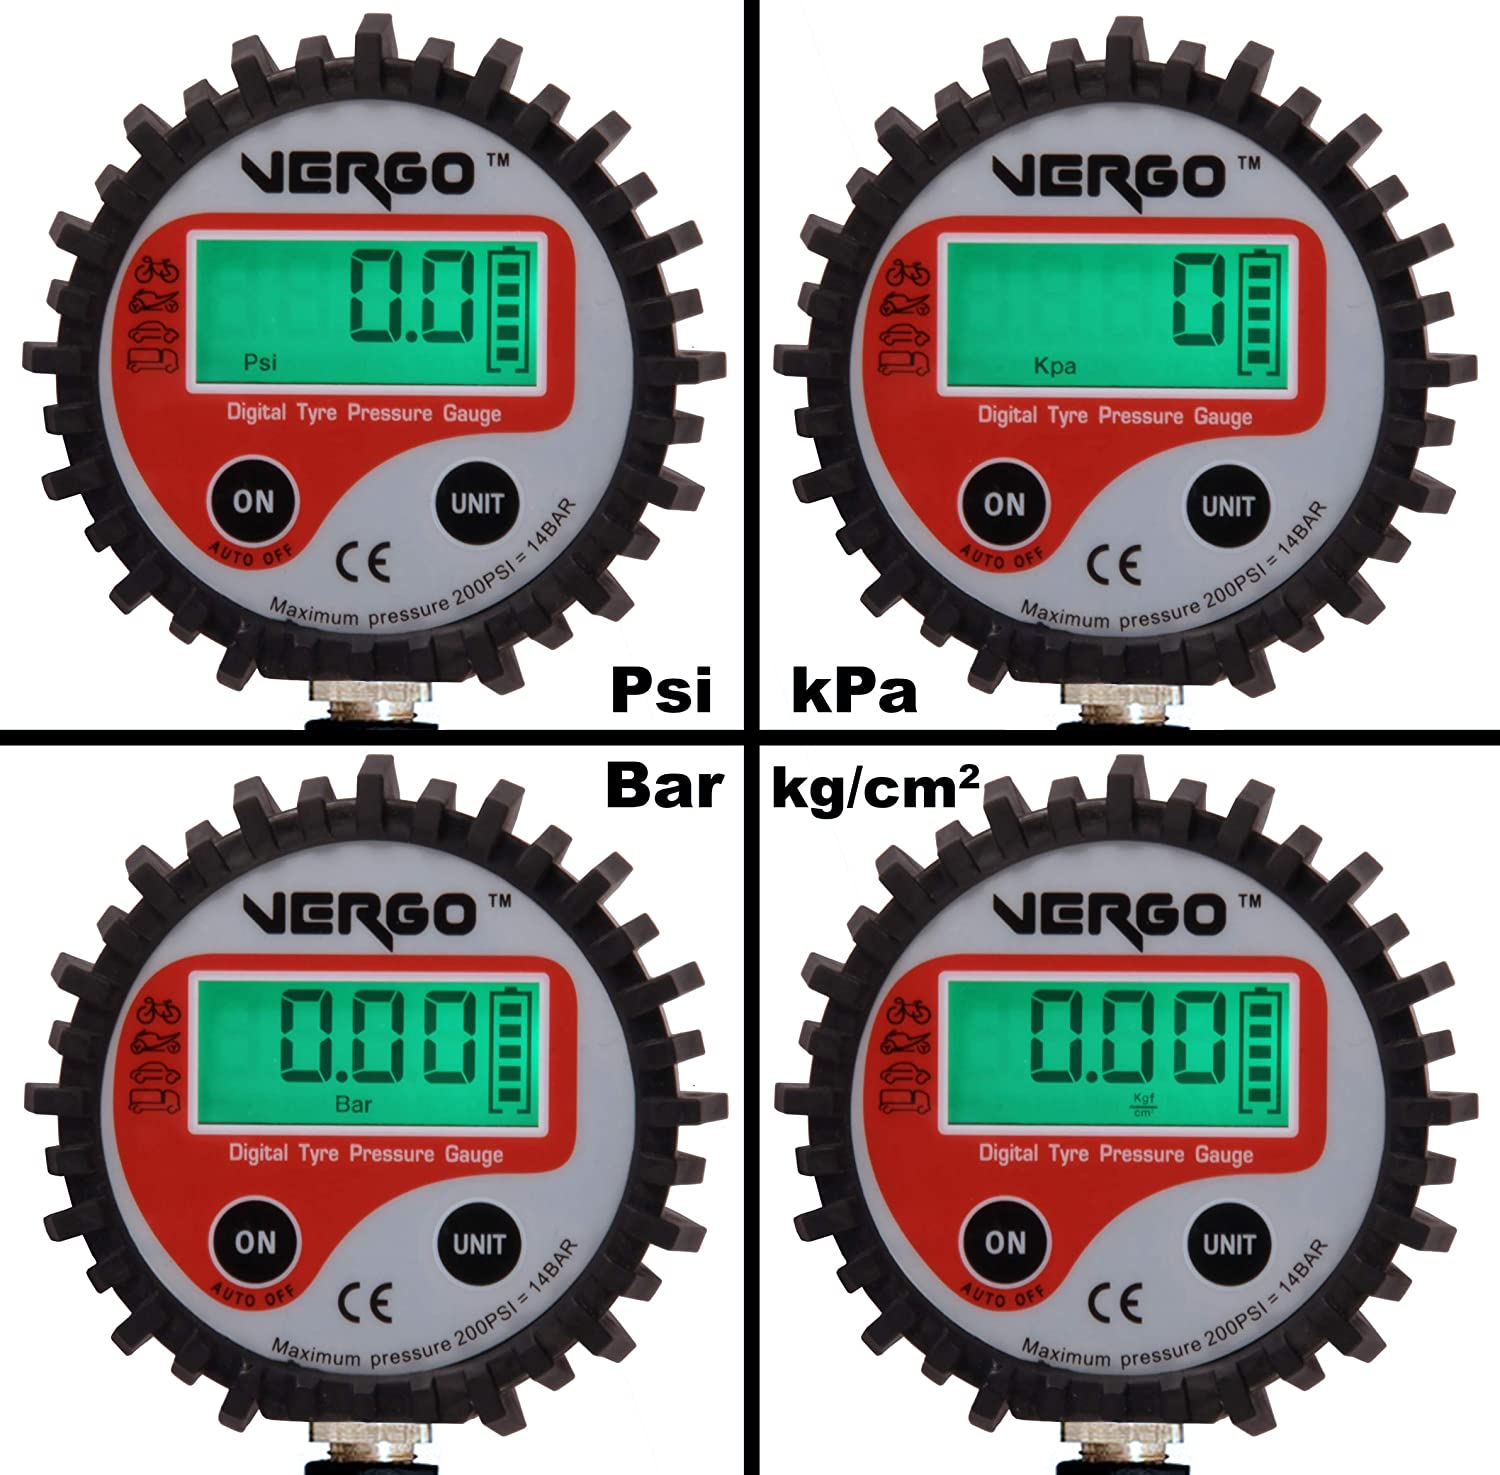 Flexible Hose SUVs Motorcycle Trucks /Backlit LCD 4/Units Cars /200psi//200/PSI//3/in 1/Multifunction Device/ VERGO Digital Tyre Inflator Pressure Gauge/ with Schrader Valves Bicycle